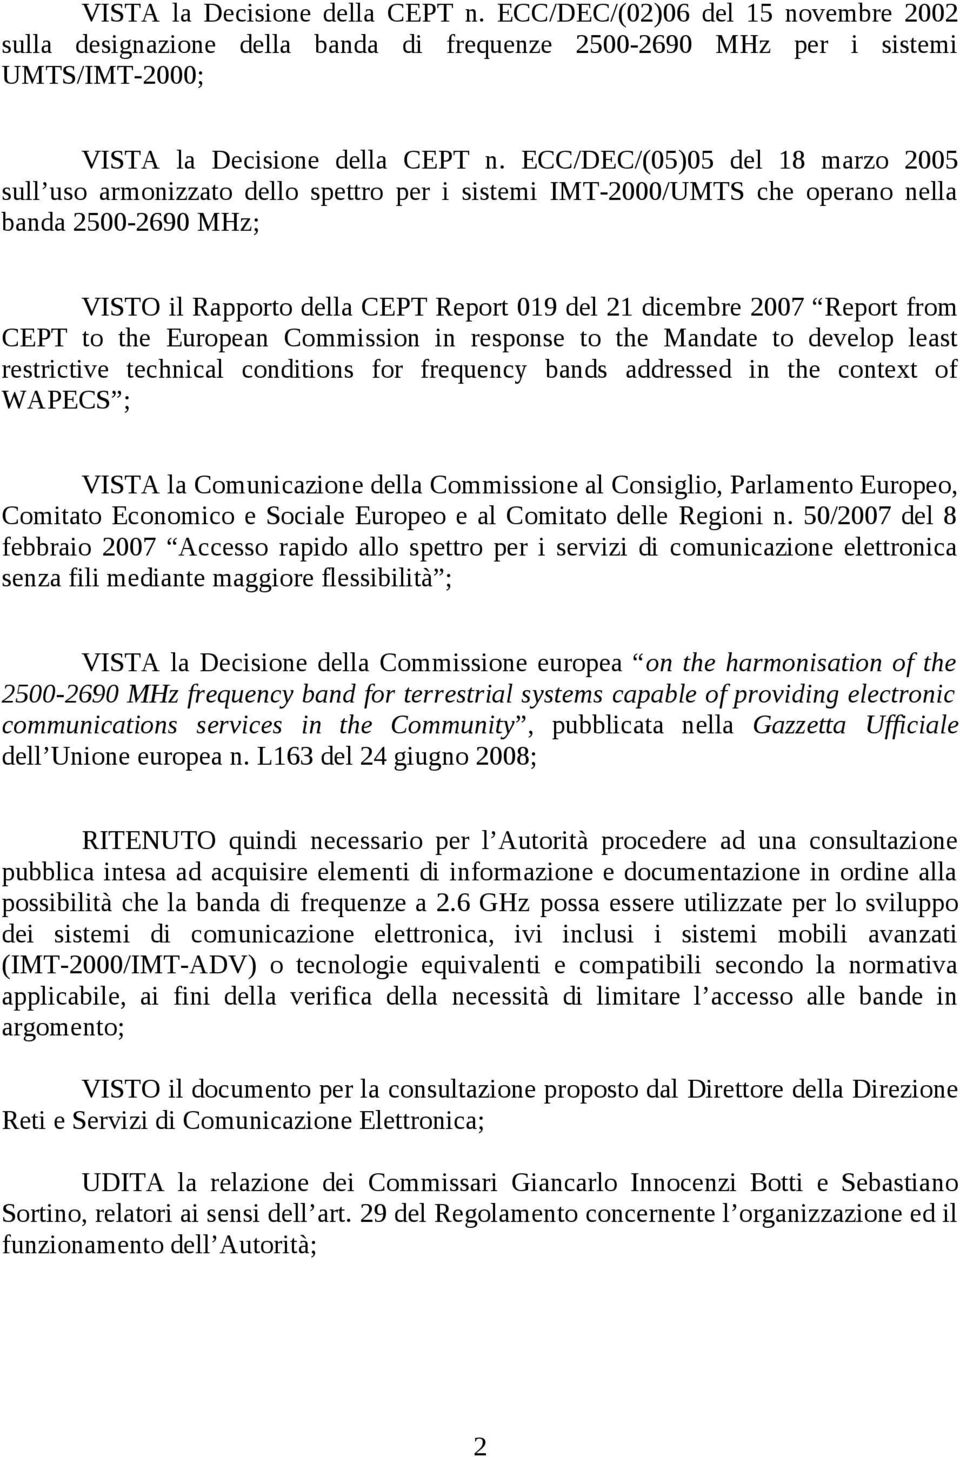 from CEP to the European Commission in response to the Mandate to develop least restrictive technical conditions for frequency bands addressed in the context of WAPECS ; VISA la Comunicazione della